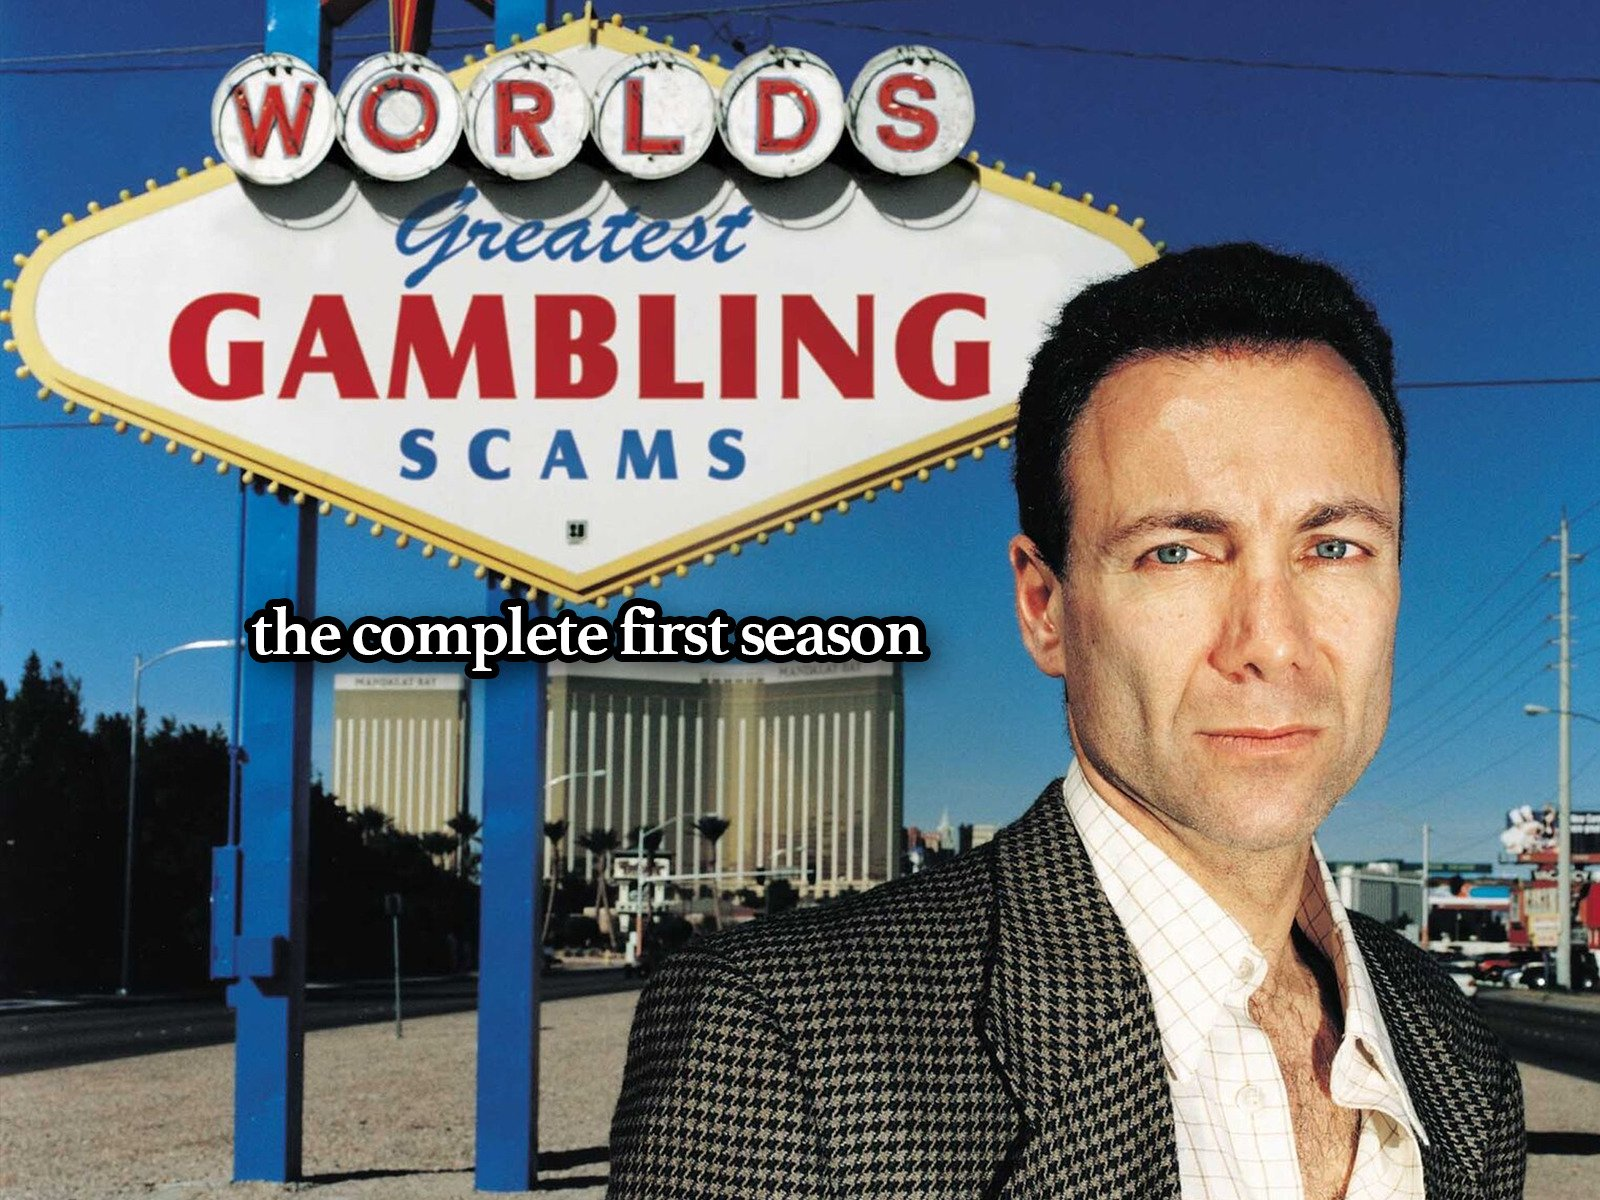 Gambling scams in foreign countries pro and con gambling